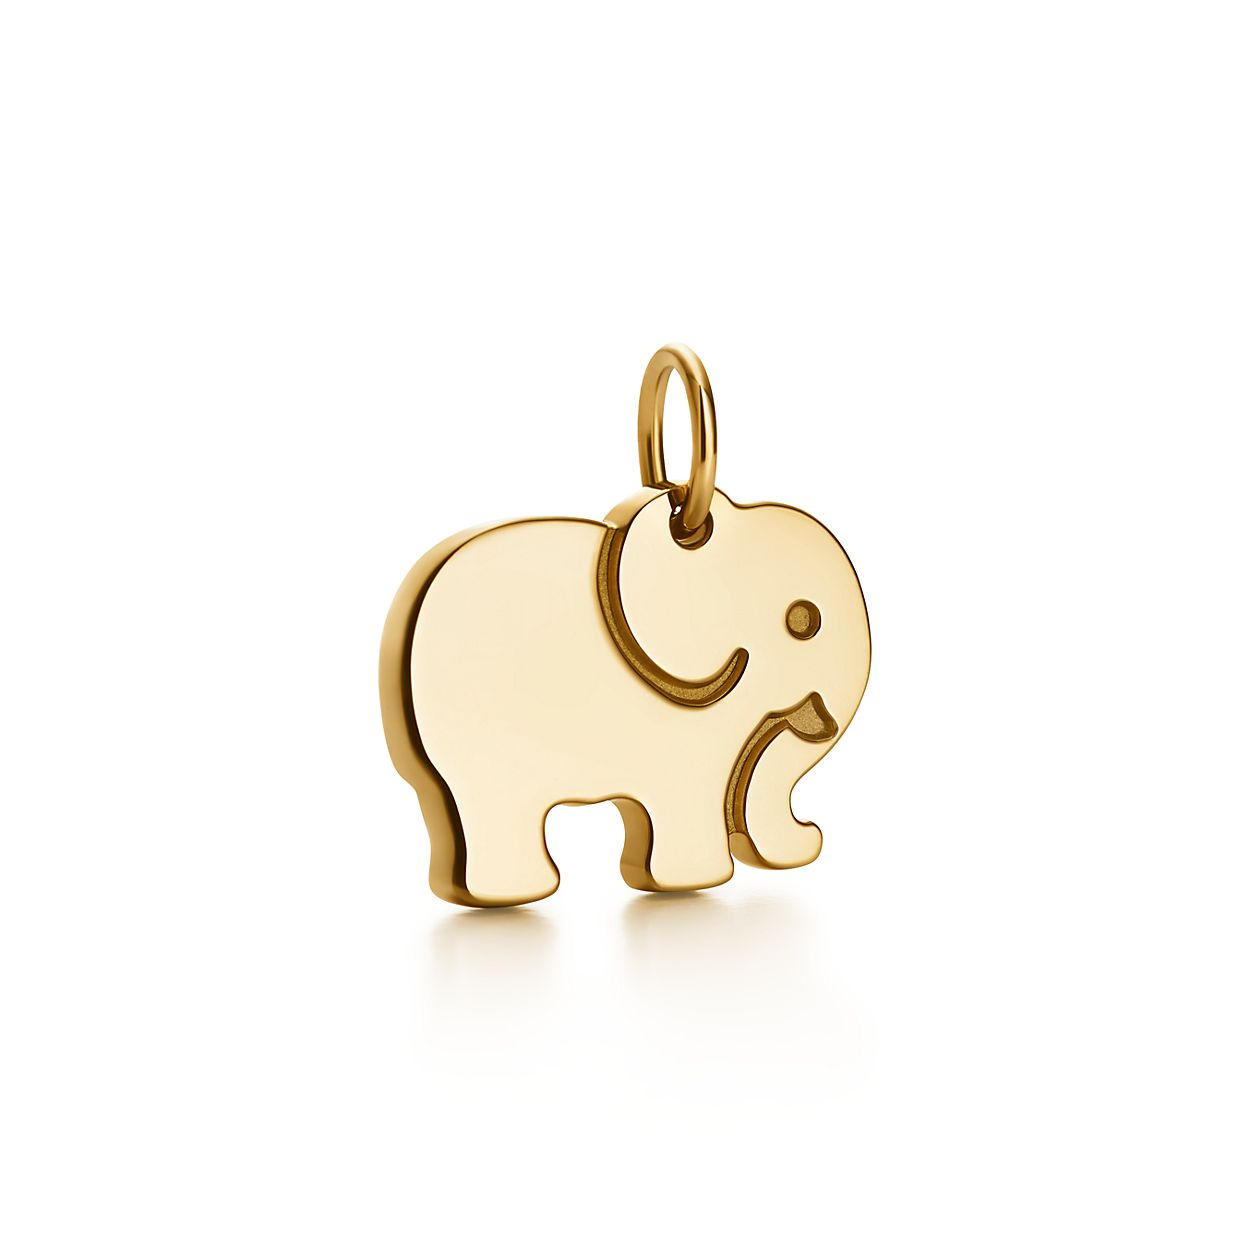 Tiffany Charms elephant never forgets charm in 18k gold Tiffany & Co. FvGZ1N